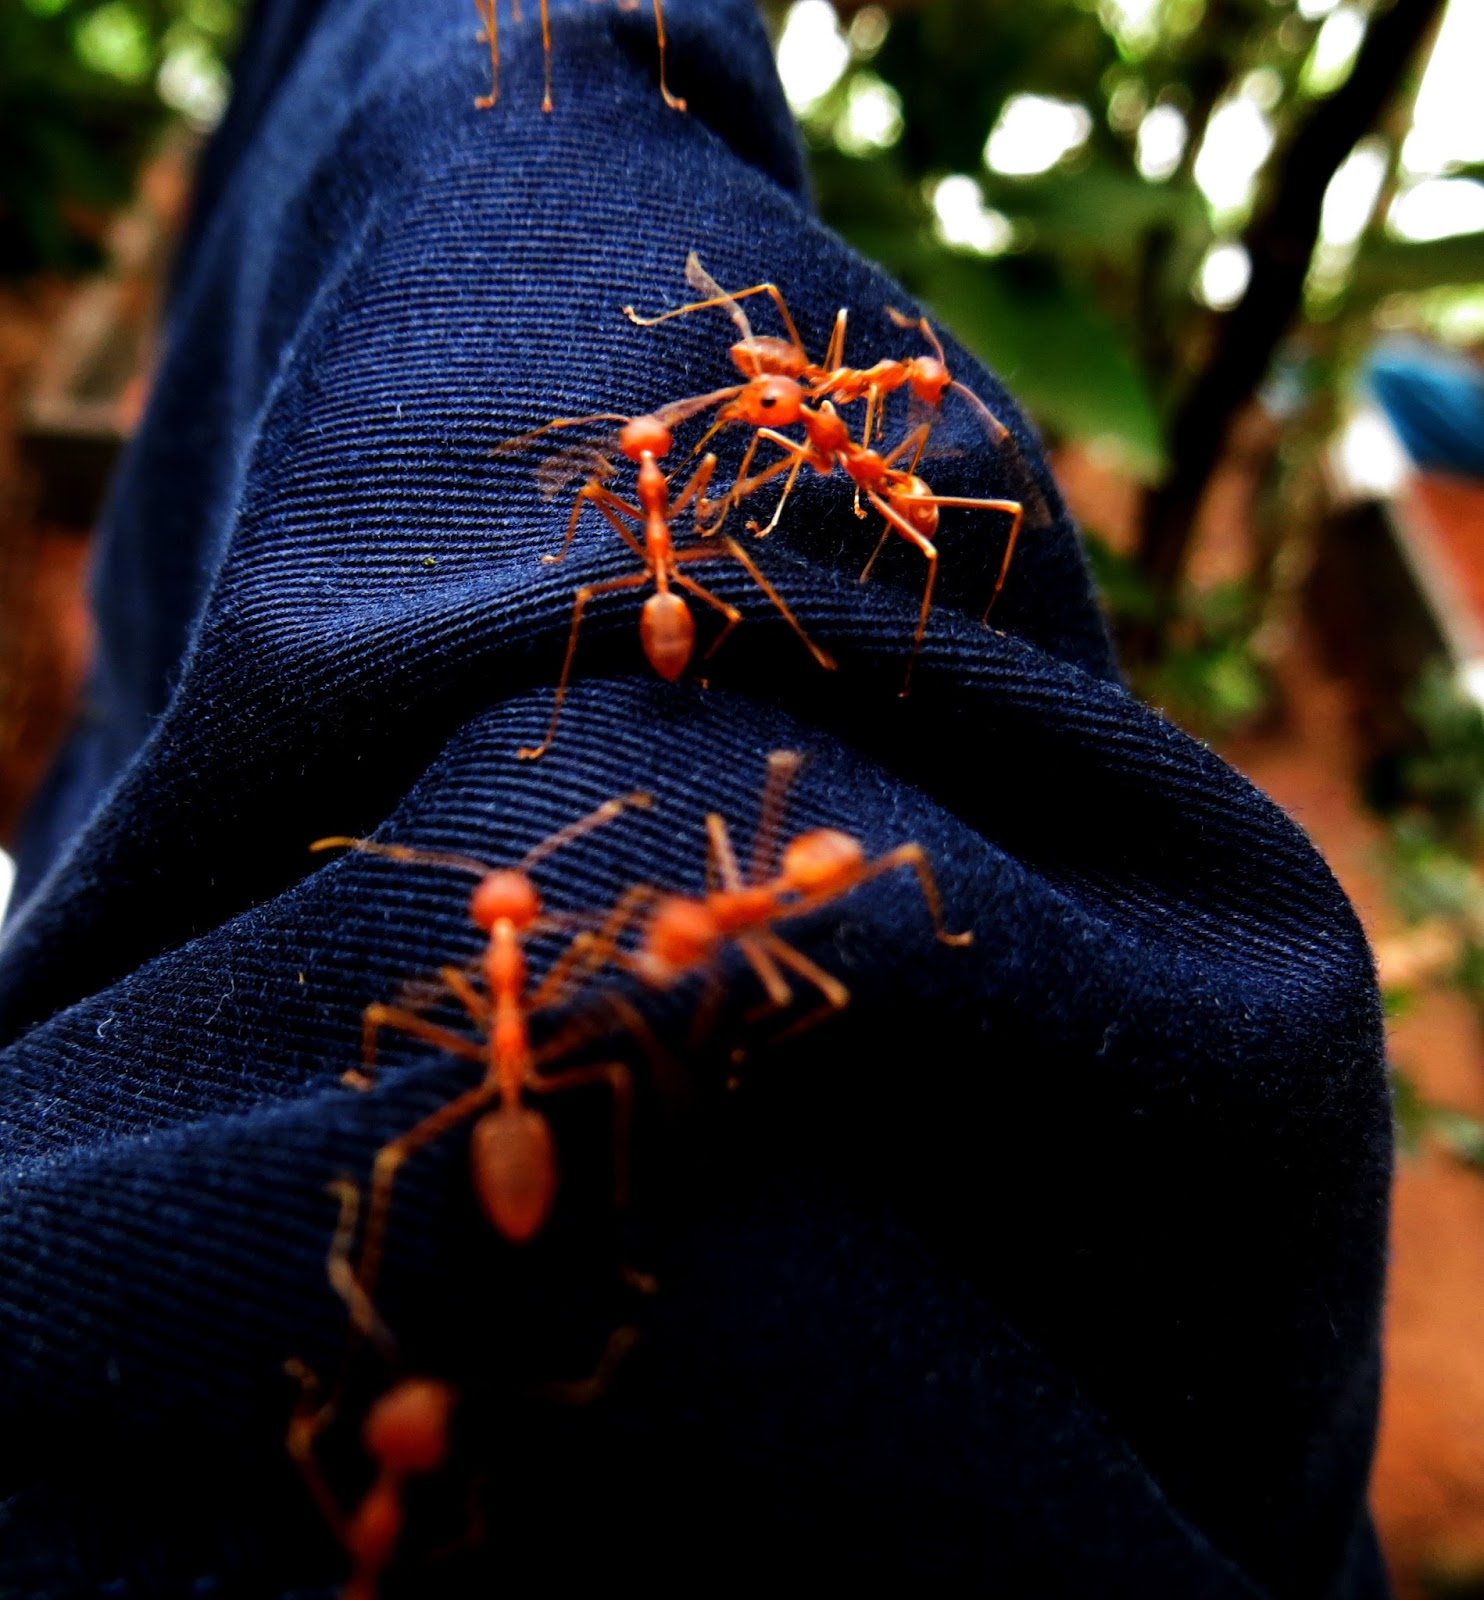 Ants walking on a jean.